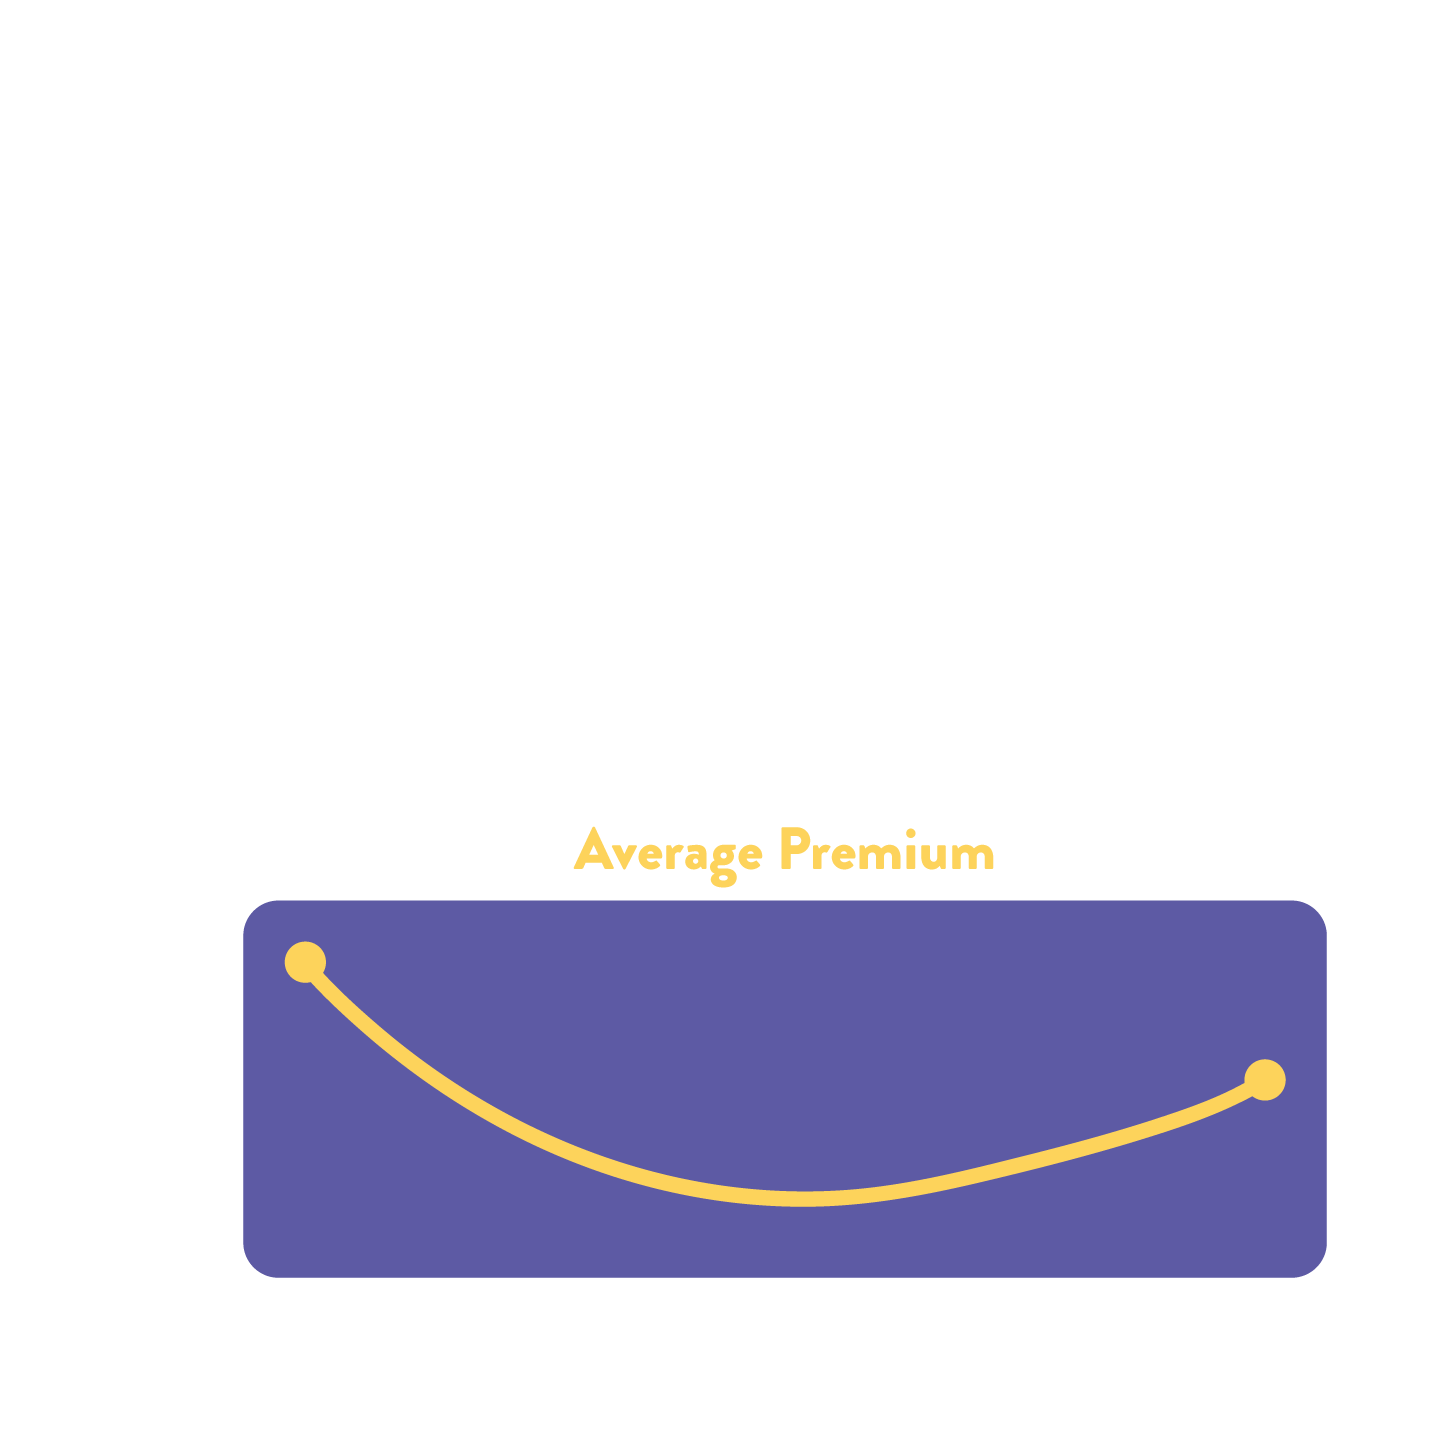 A line graph showing the average premium for car insurance as you age